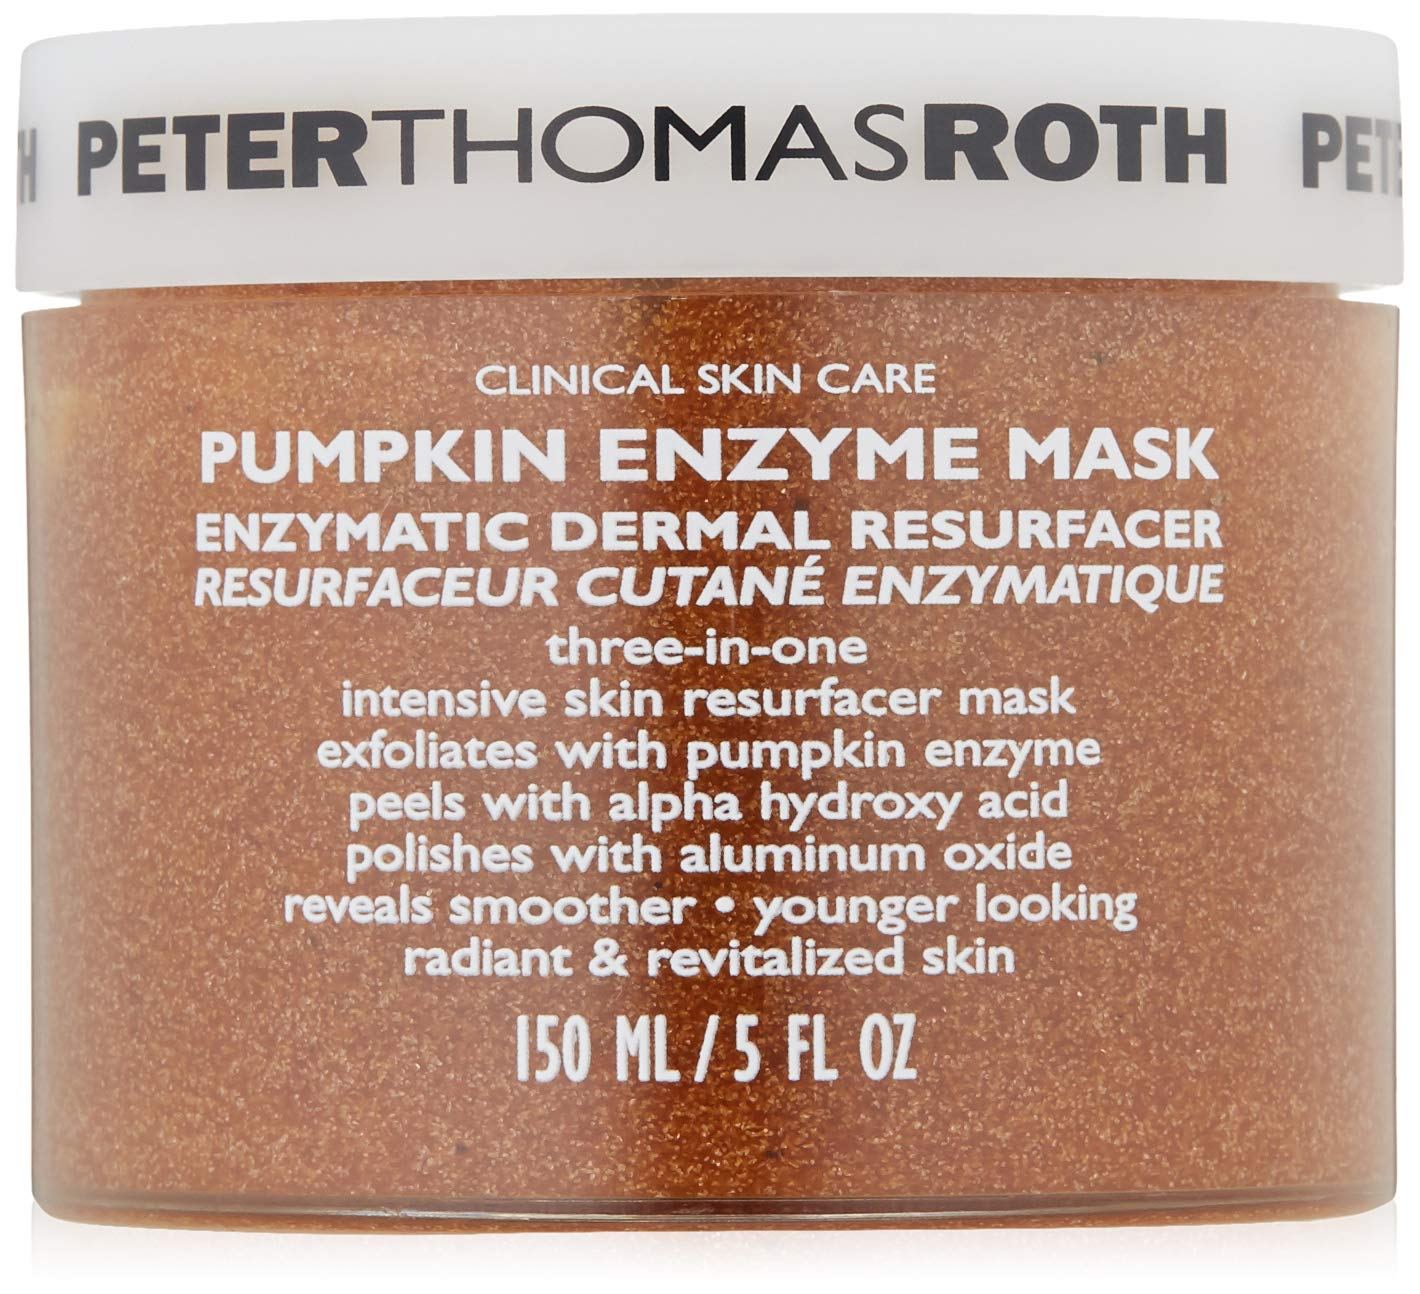 Peter Thomas Roth Pumpkin Enzyme